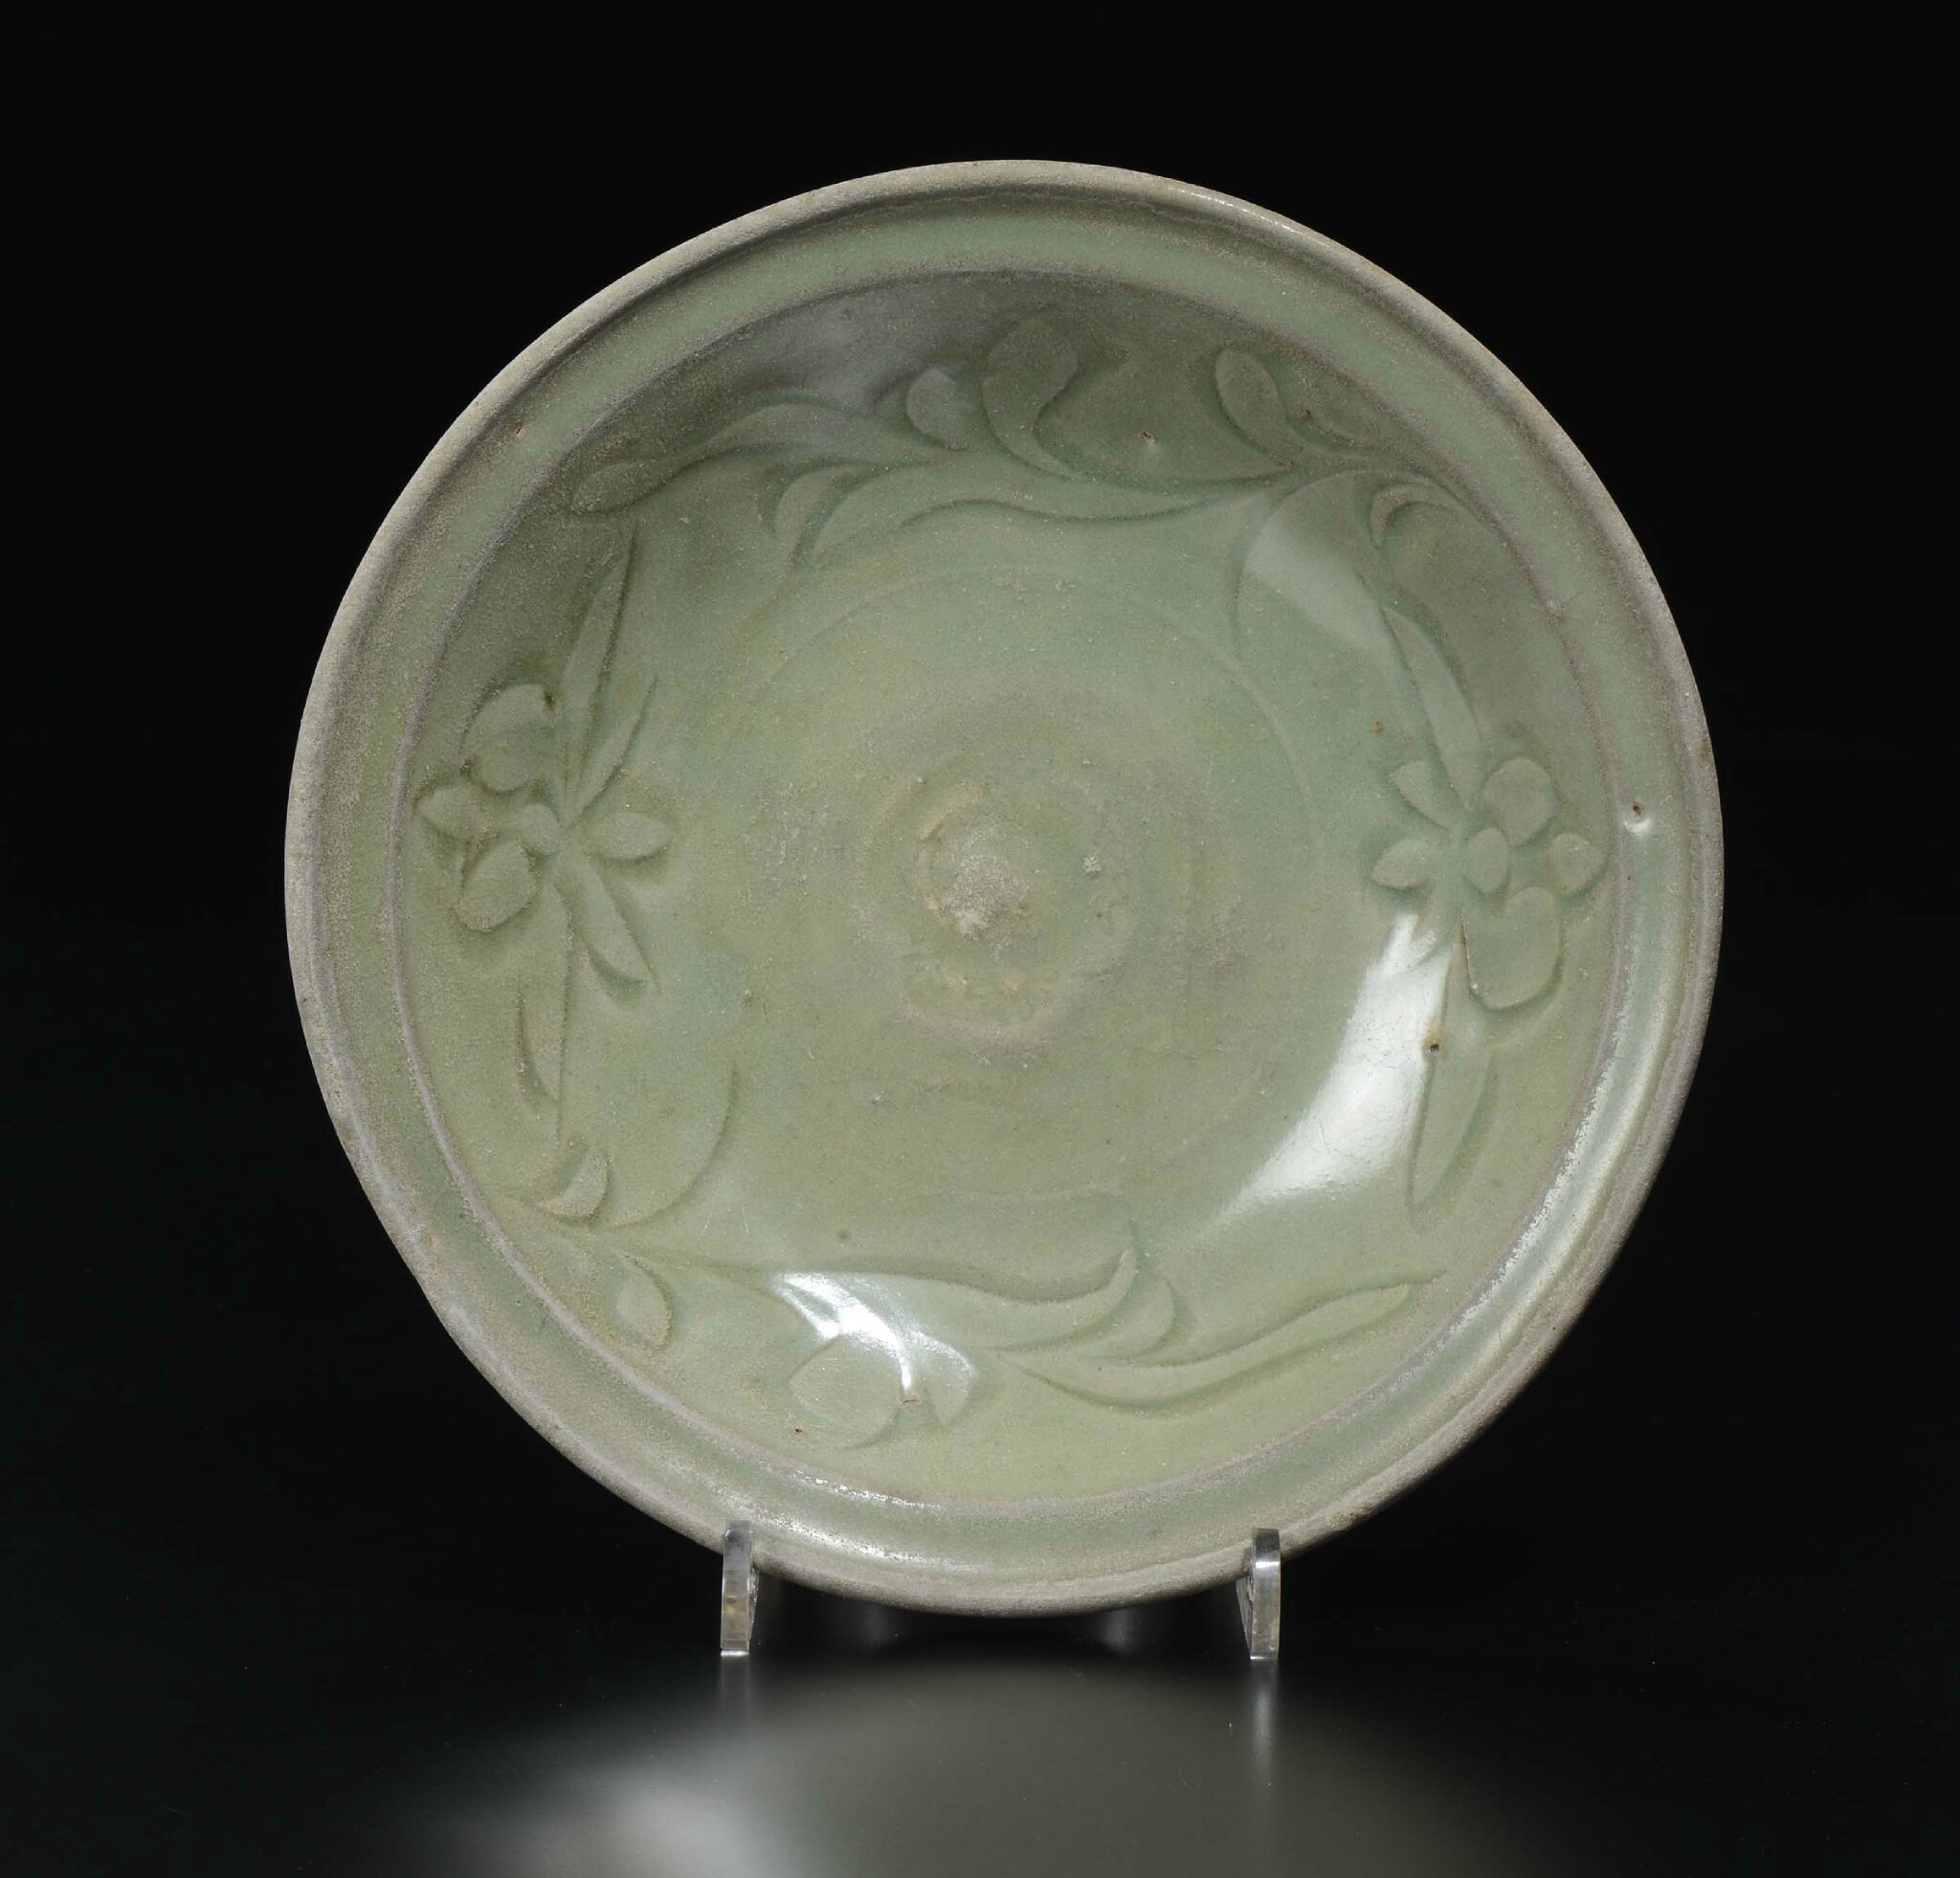 A Celadon porcelain dish with naturalistic decoration, China, Ming Dynasty, 16th century